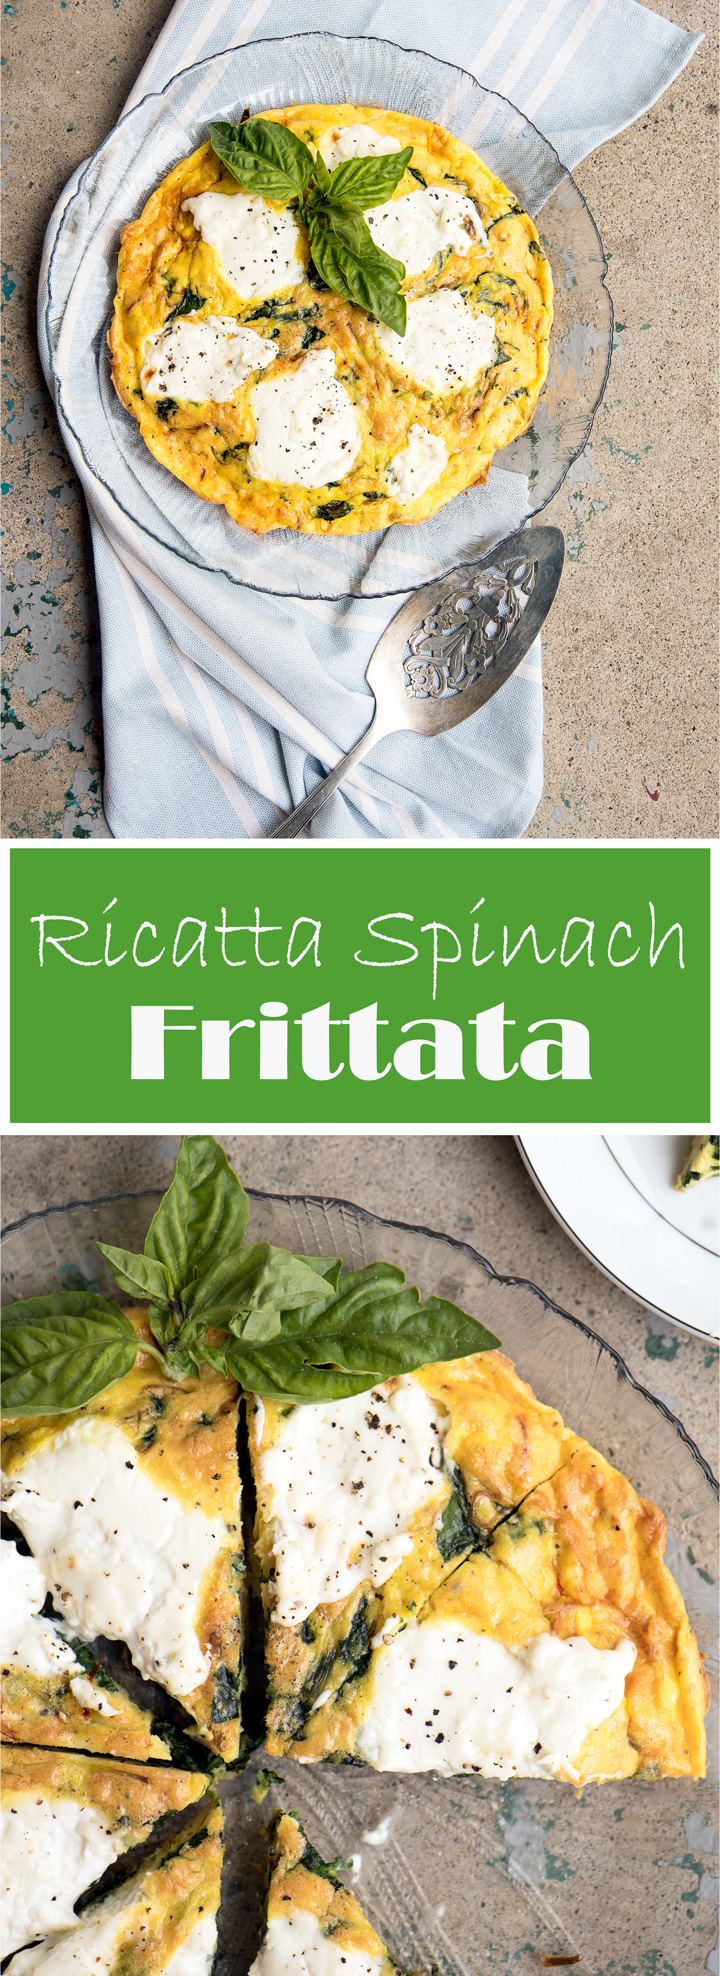 Ricotta Spinach Frittata. Spring spinach frittata recipe with leeks, saffron and ricotta. An elegant frittata recipe and a great healthy substitute for quiche. Perfect for any meal of the day.